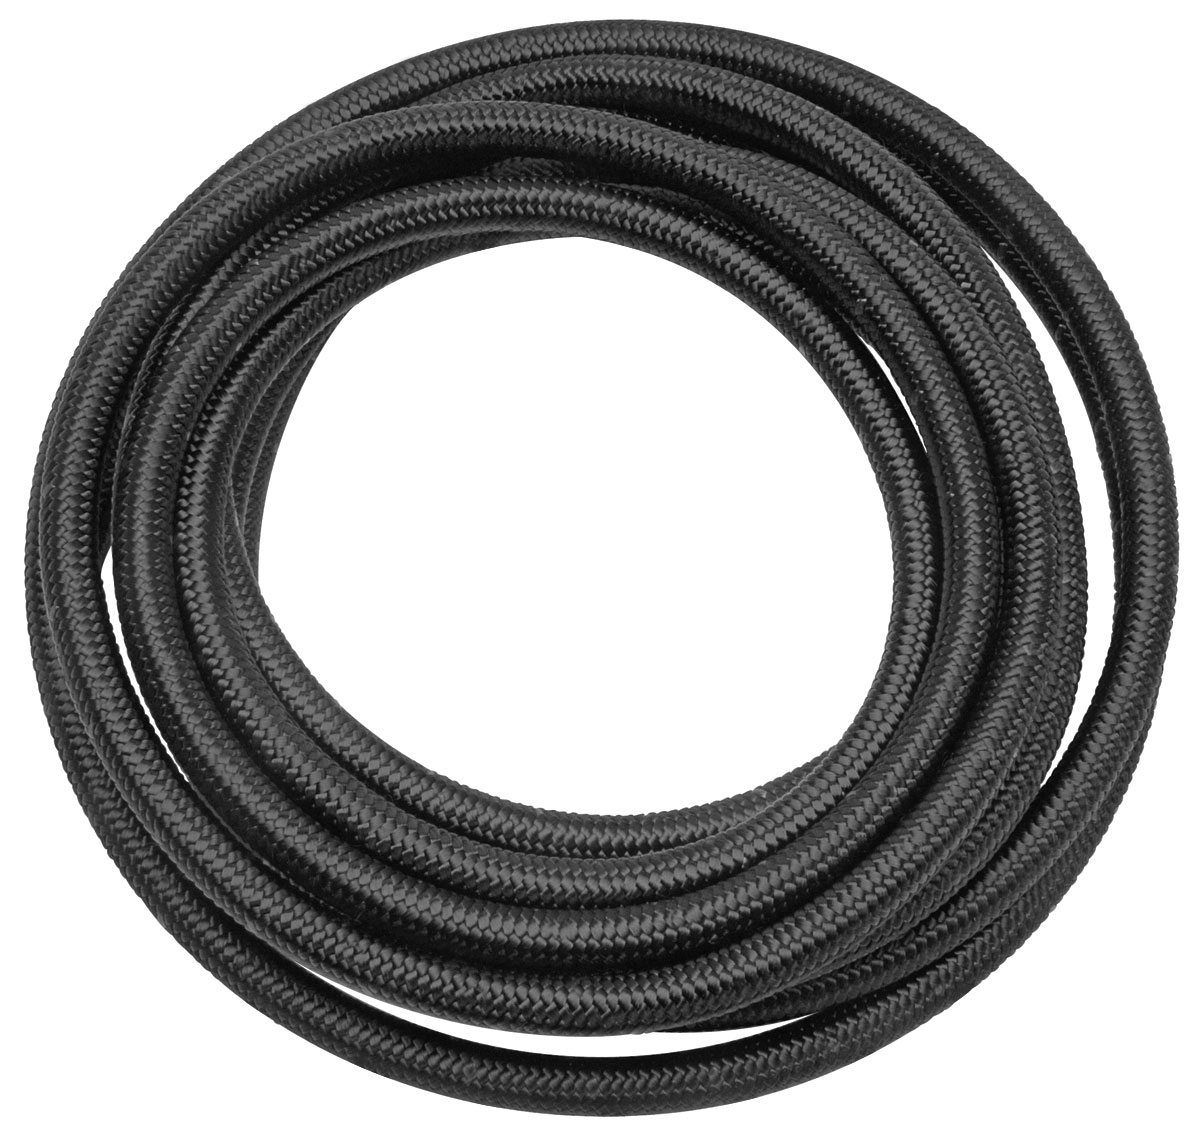 Hose, ProLite 350, Earls, -6AN, 20FT